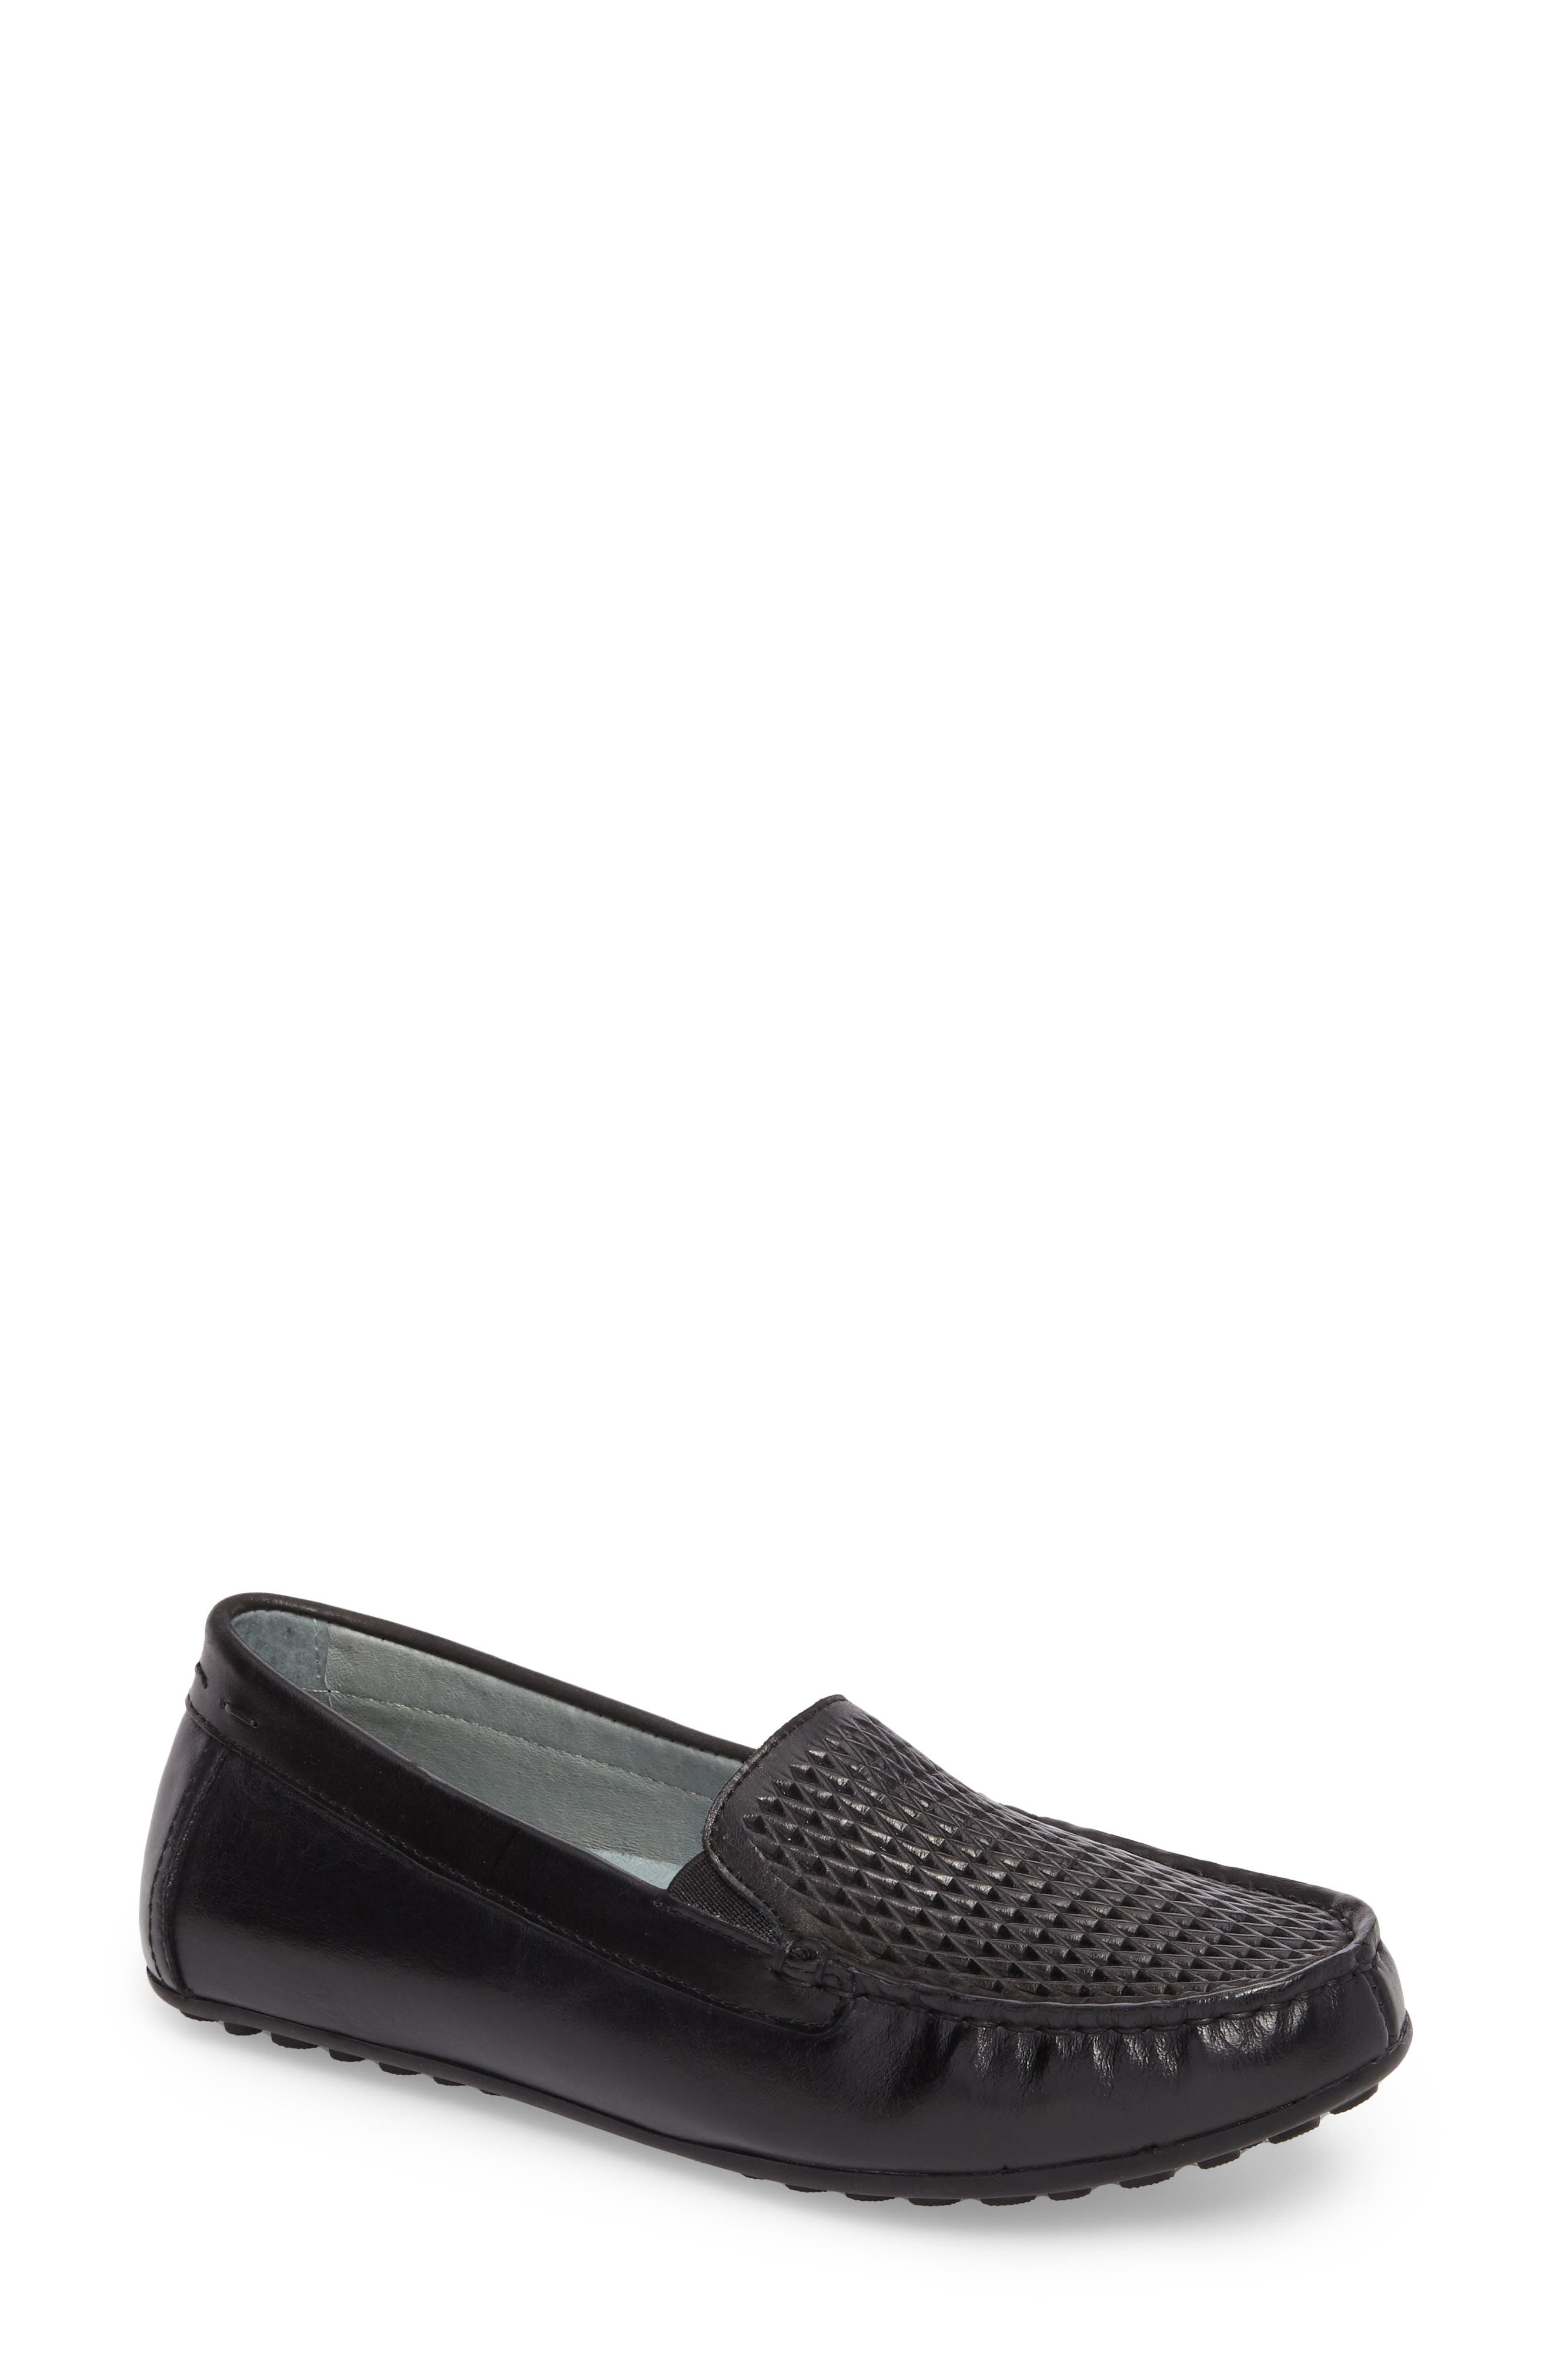 Posh Driving Loafer,                         Main,                         color, BLACK LEATHER